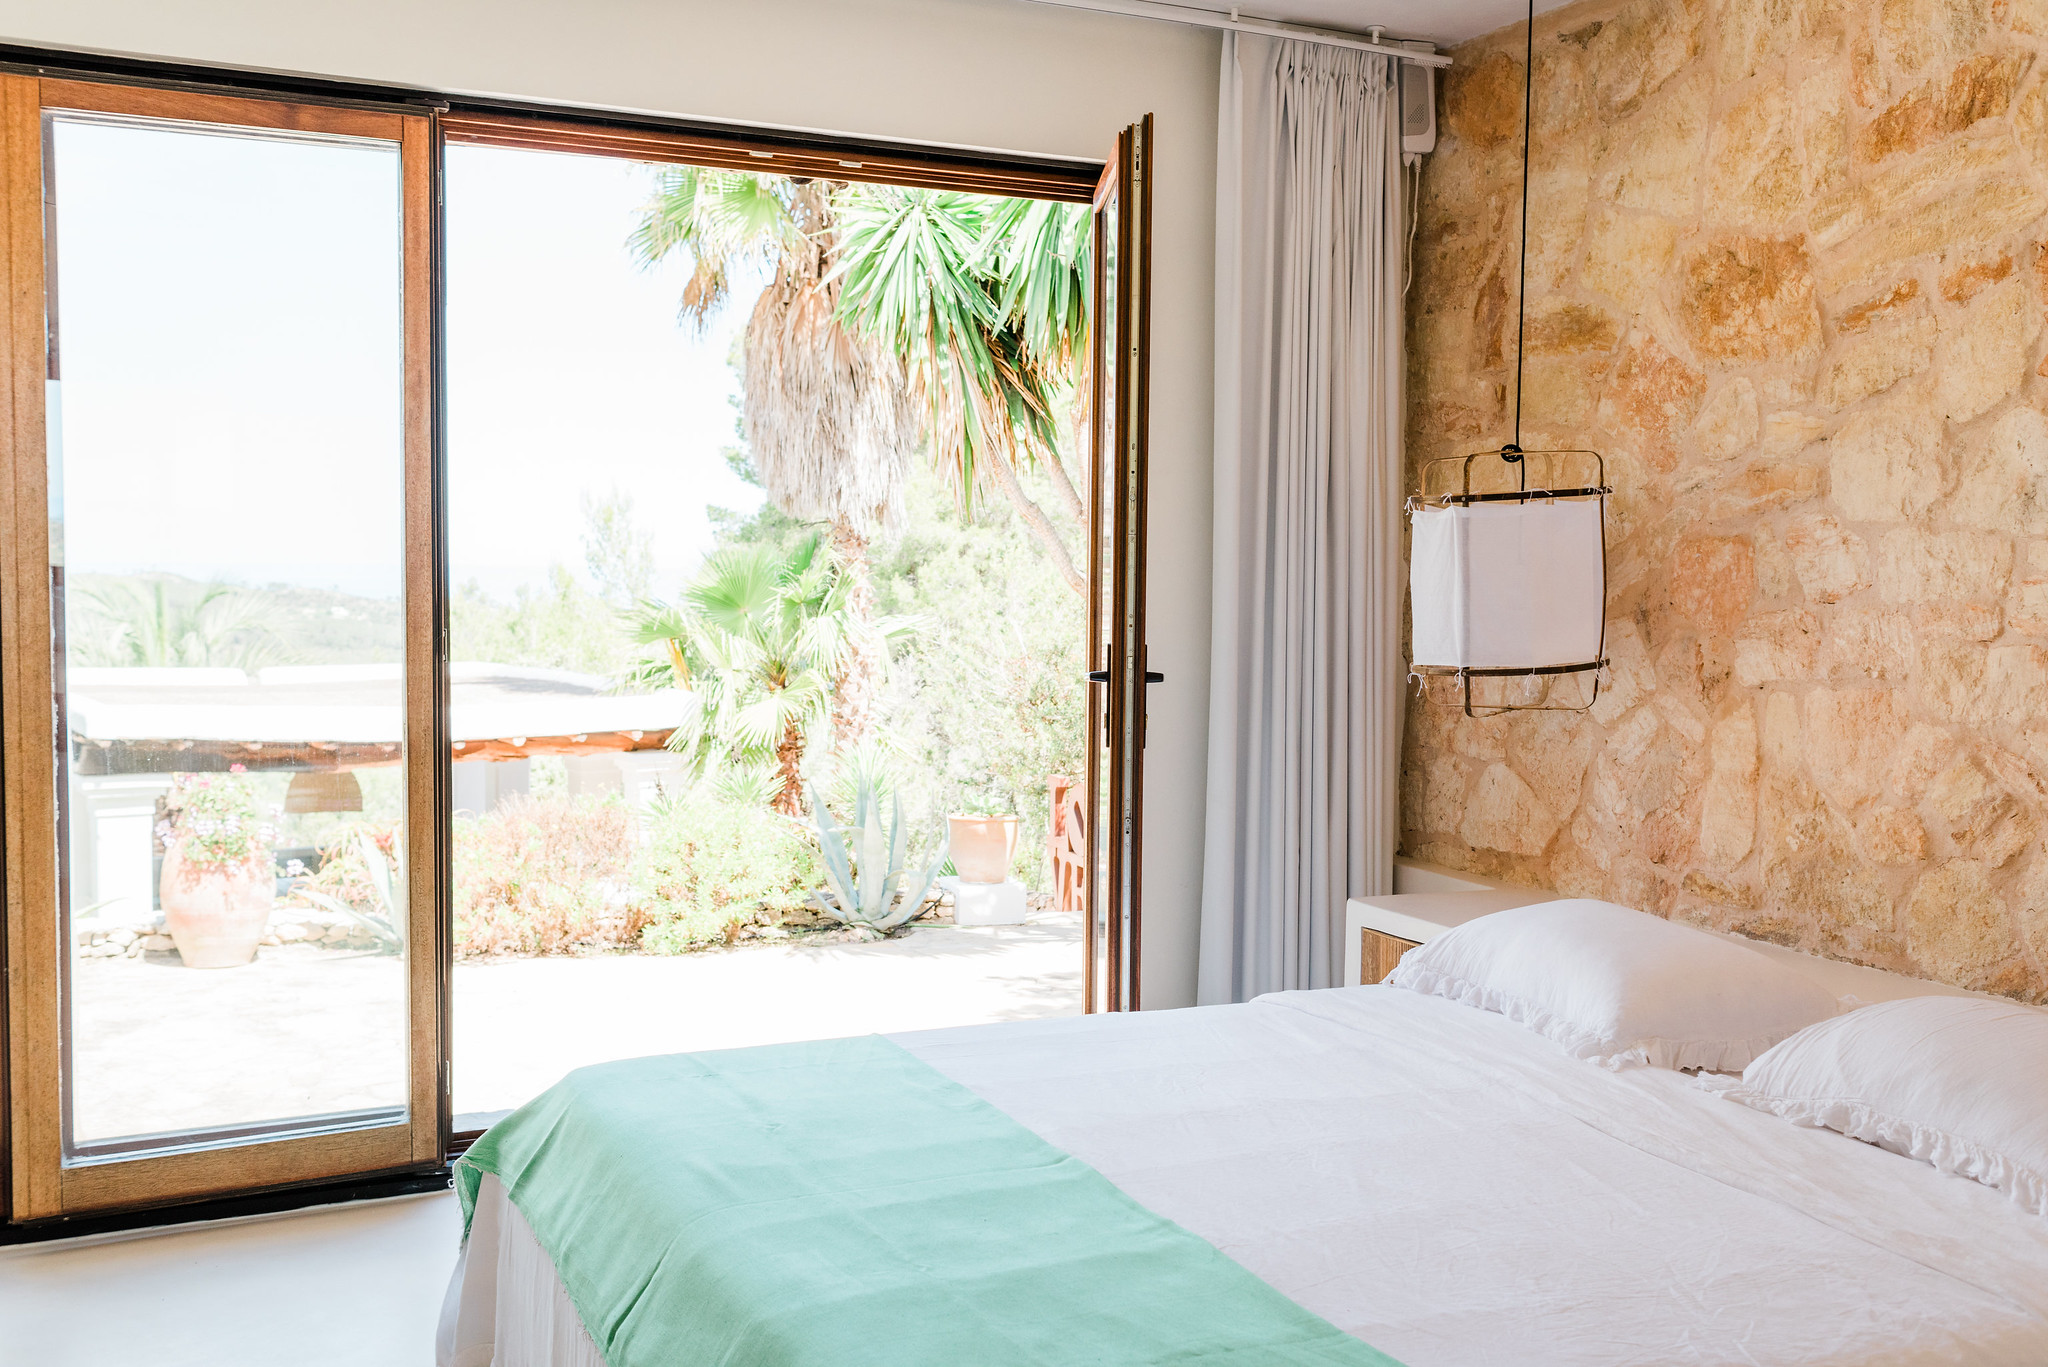 https://www.white-ibiza.com/wp-content/uploads/2020/06/white-ibiza-villas-can-calma-interior-bedroom5.jpg